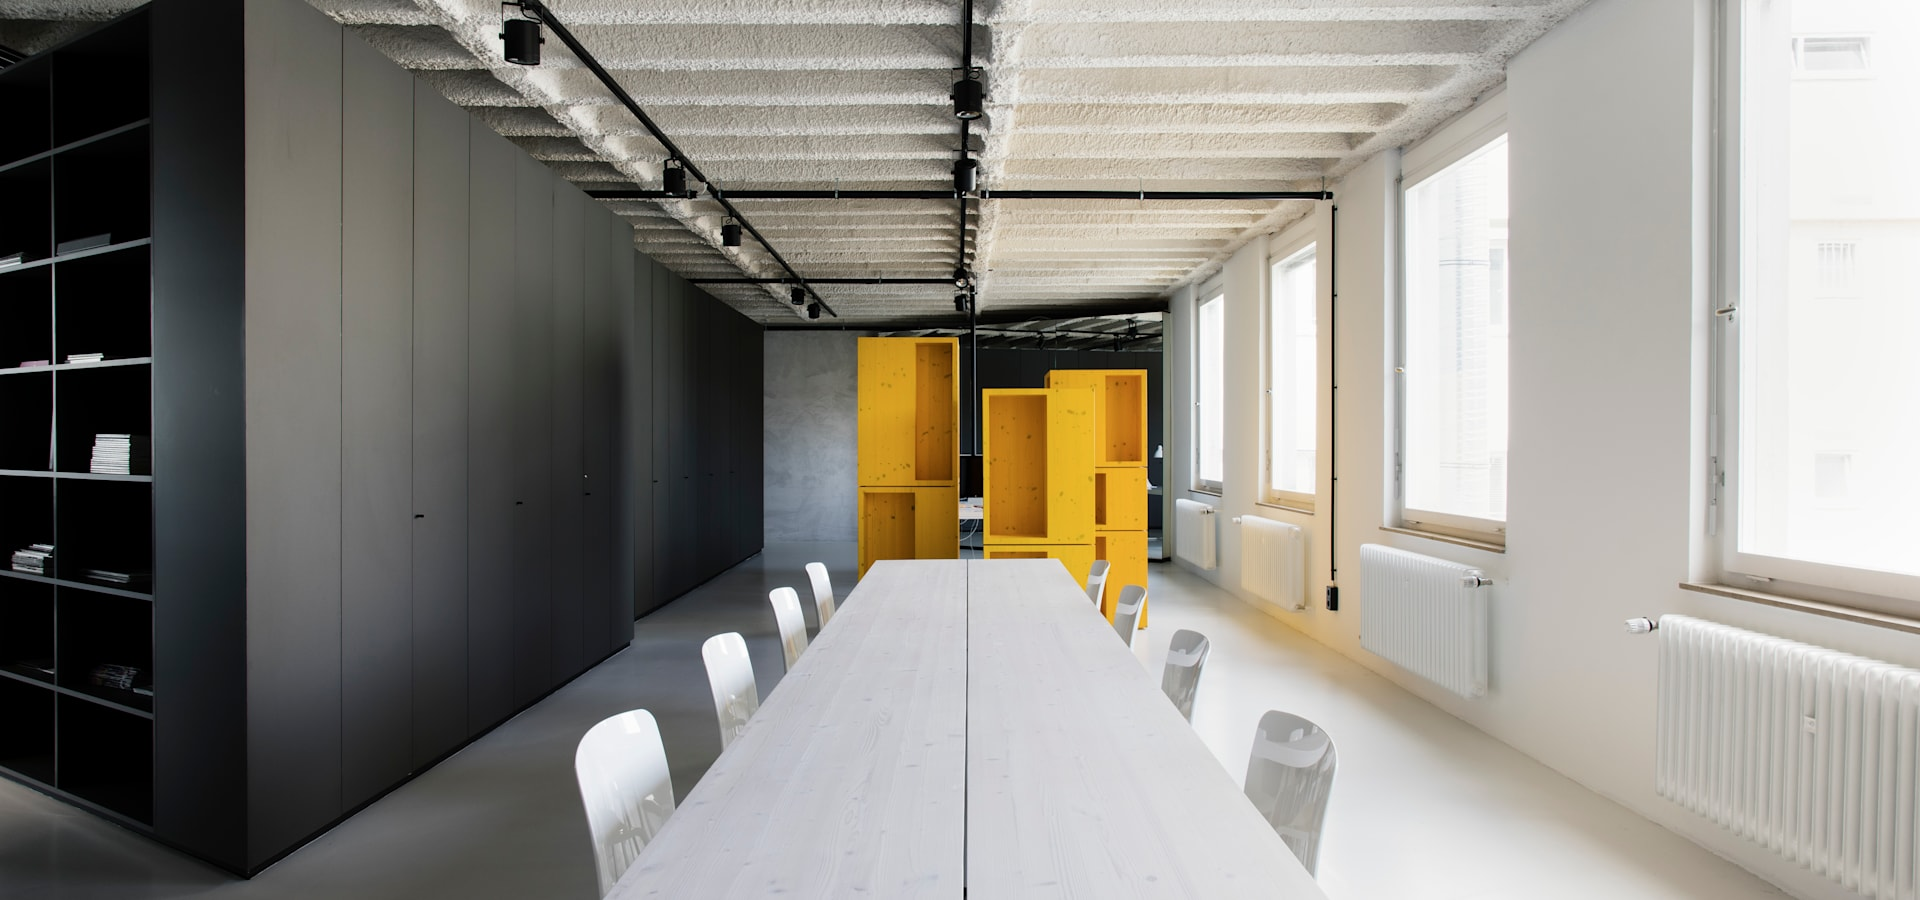 Studio moritz k hler innenarchitekten in stuttgart homify for Innenarchitekten stuttgart